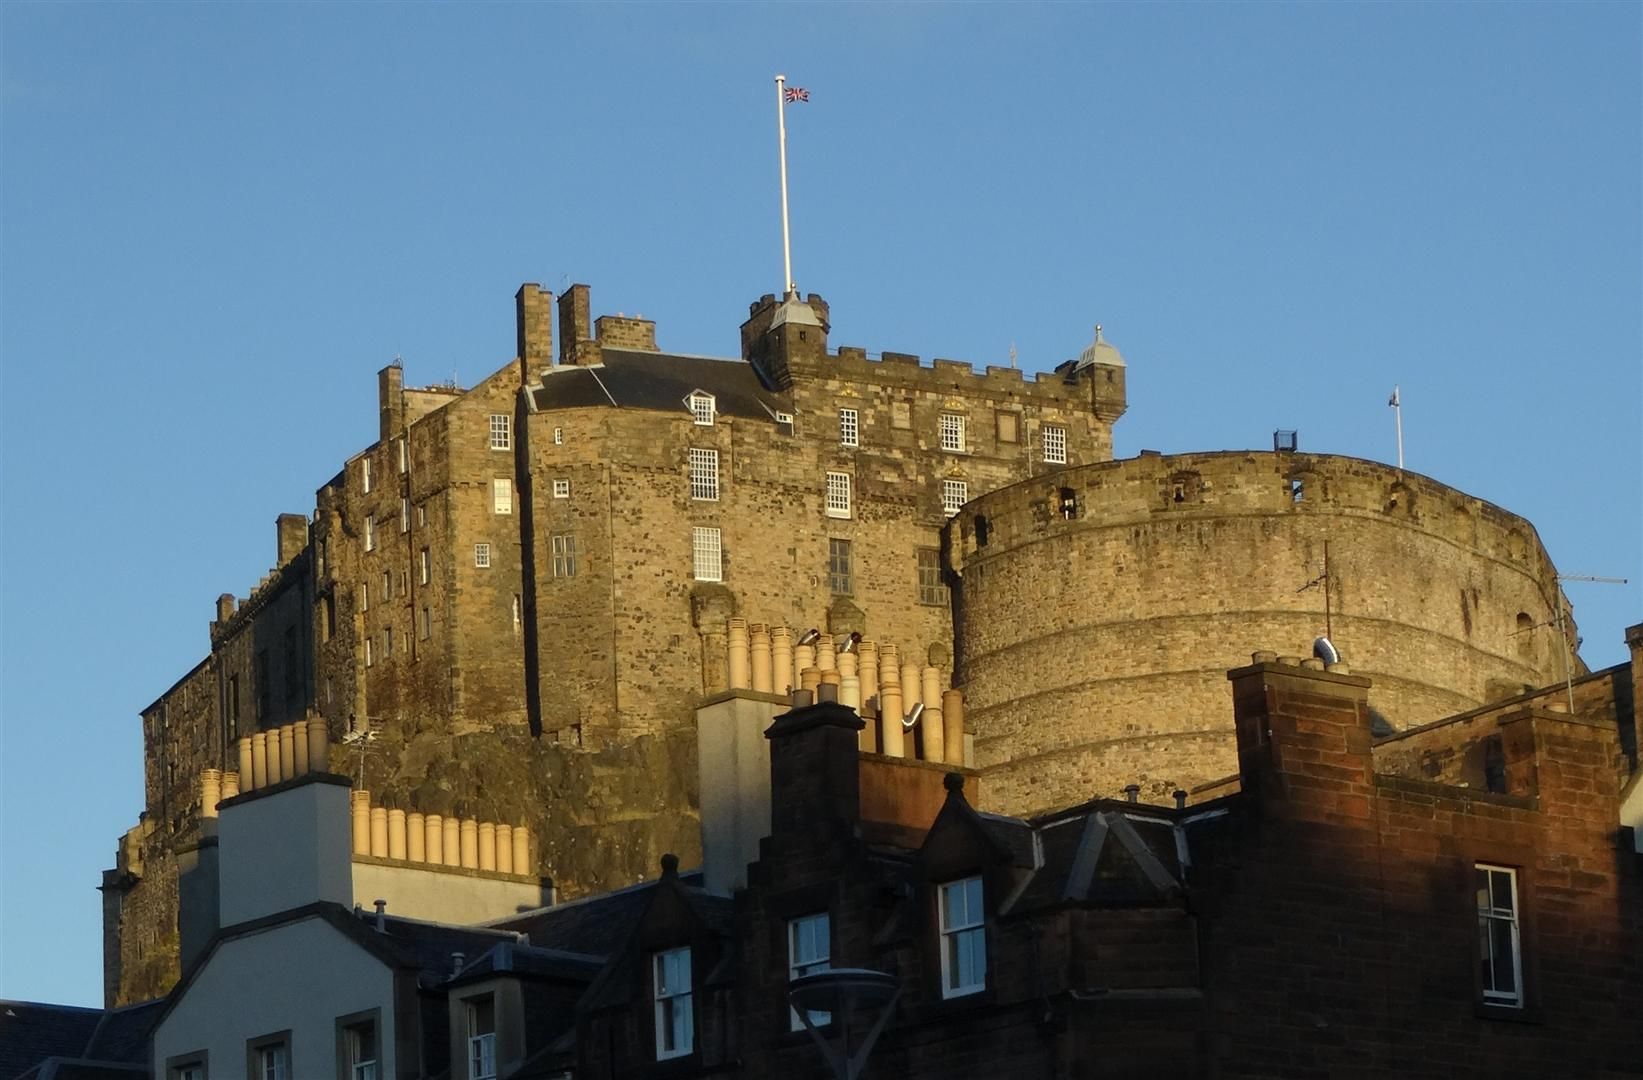 Edinburgh Castle in the early morning sunshine